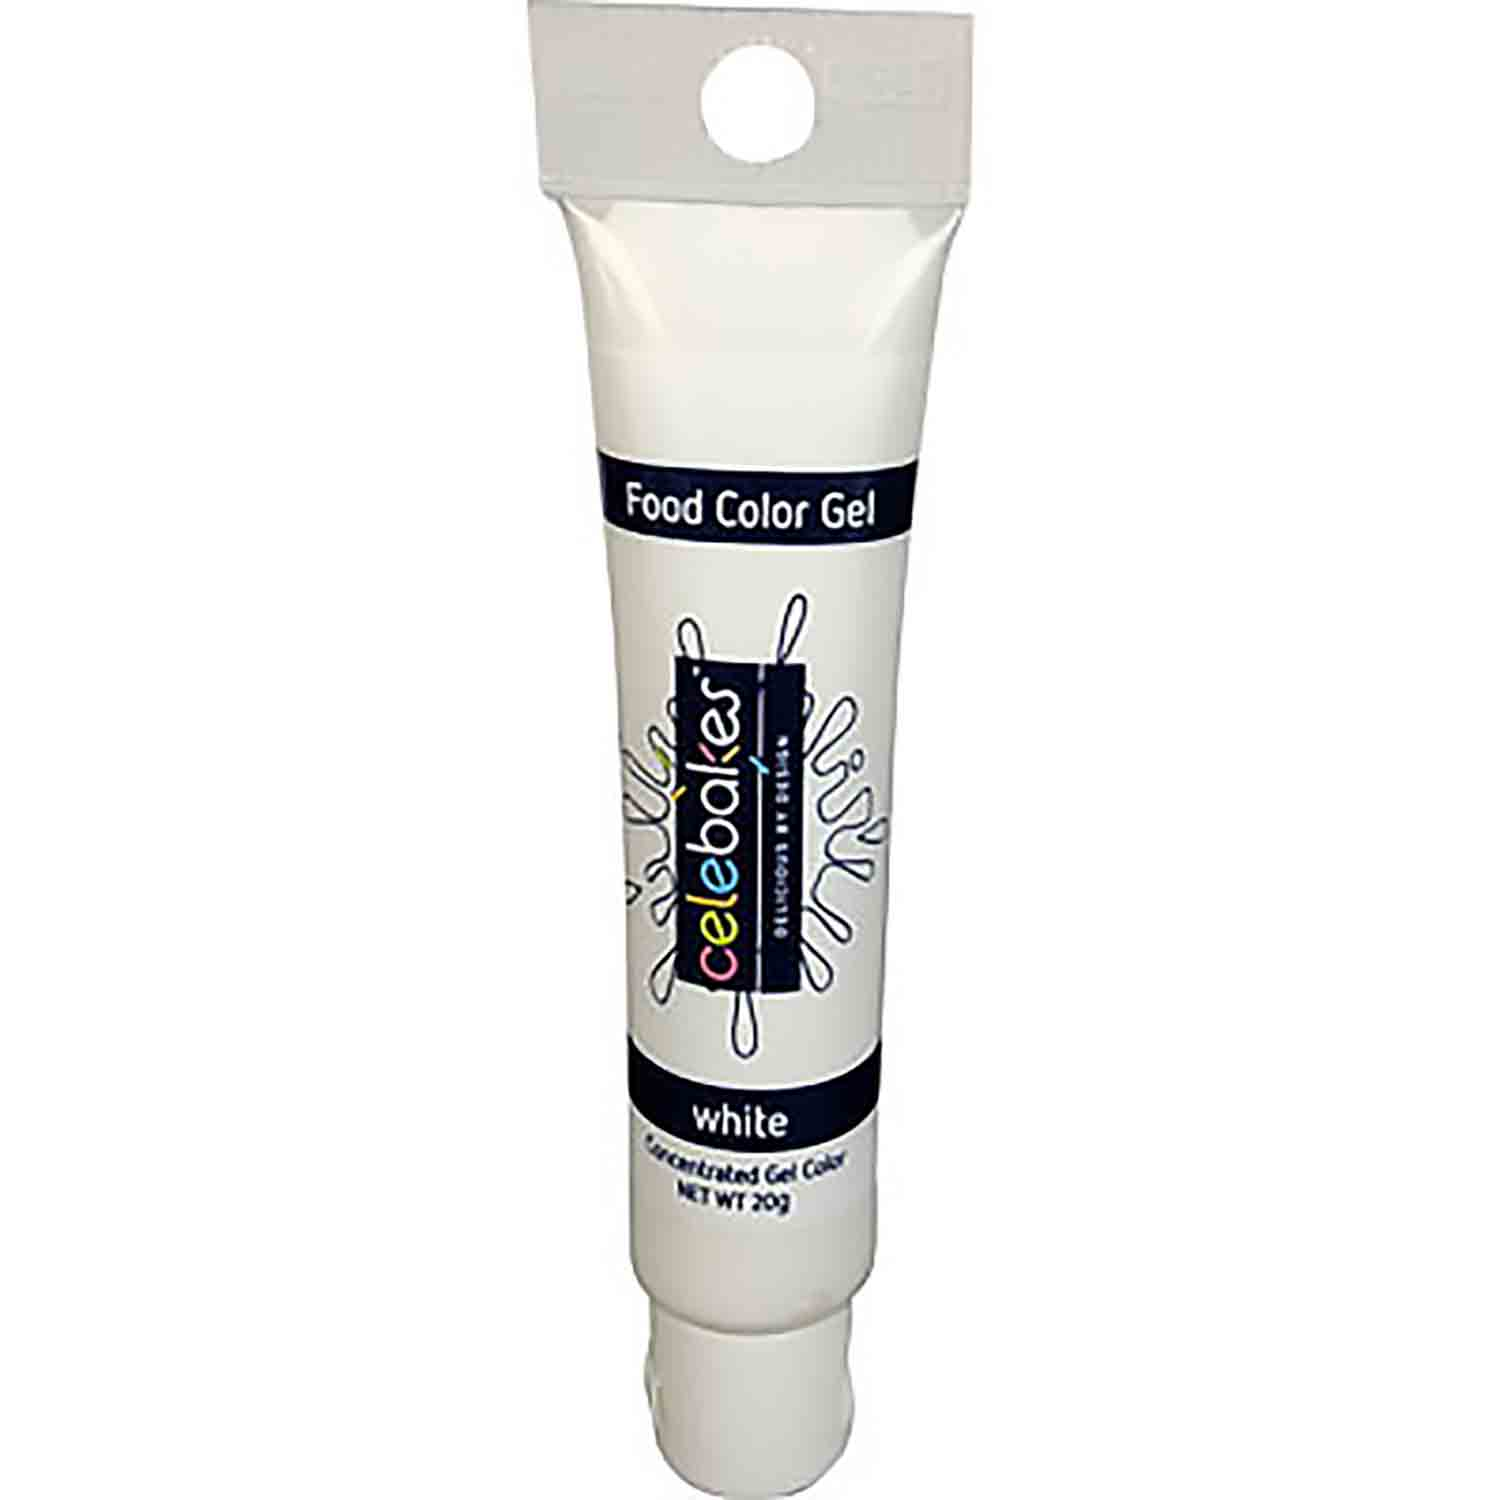 White Food Color Gel